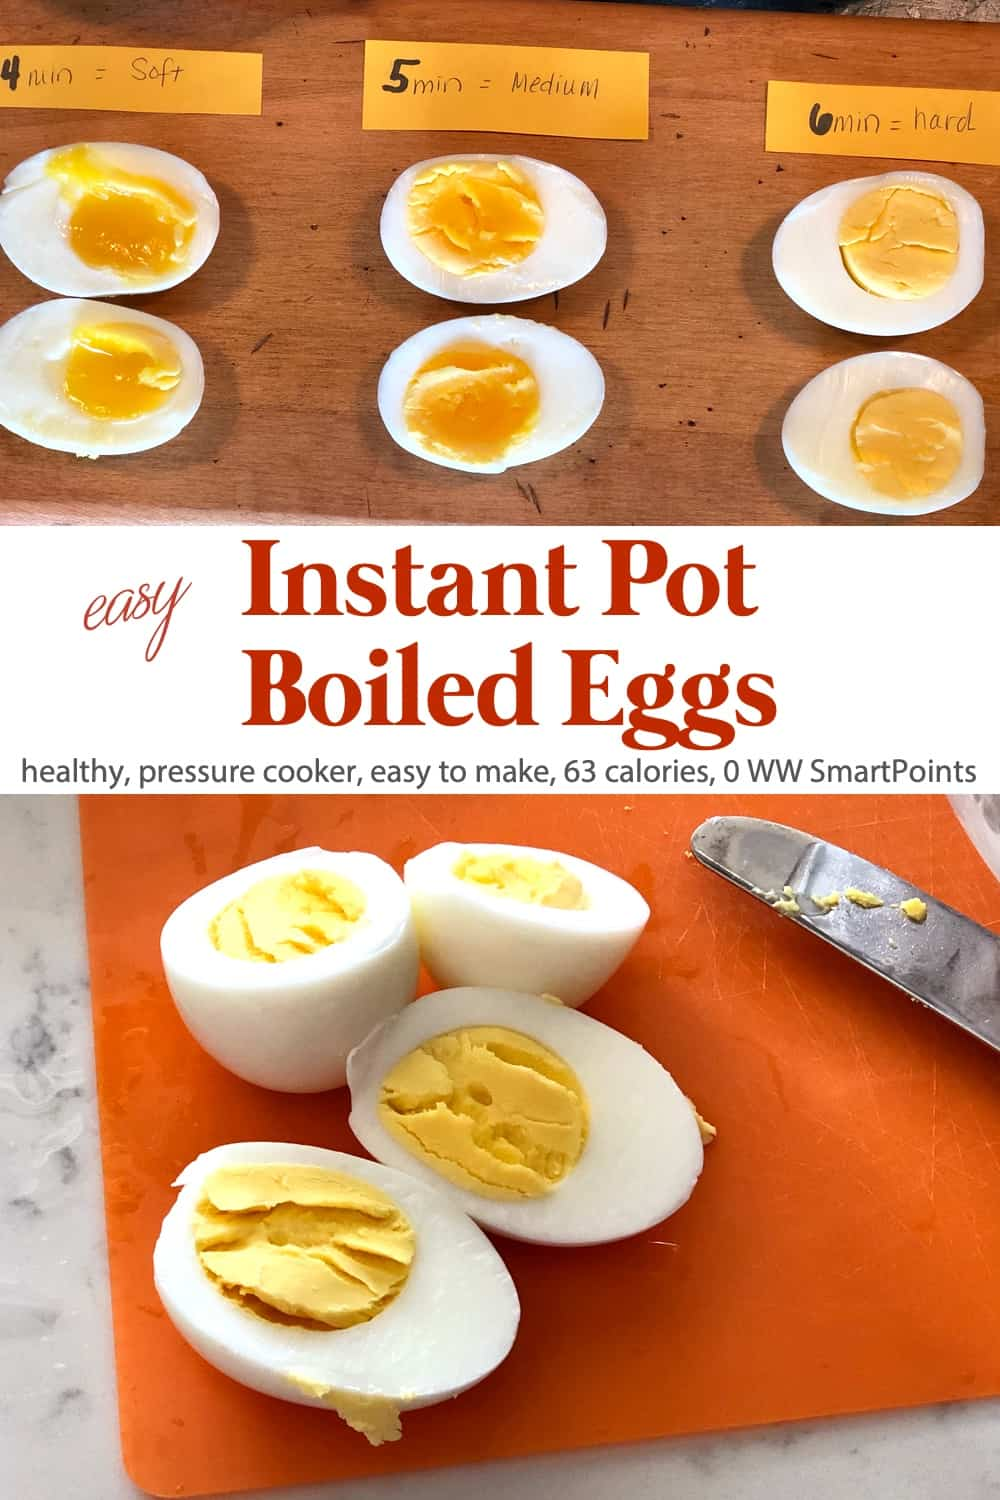 If you are an egg lover, give Instant Pot pressure cooker boiled eggs a try. With a pressure cooker, here is how to achieve the perfect hard boiled egg time after time! #instantpotboiledeggs #instantpoteggs #pressurecookereggs #eggs #ww #wwfamily